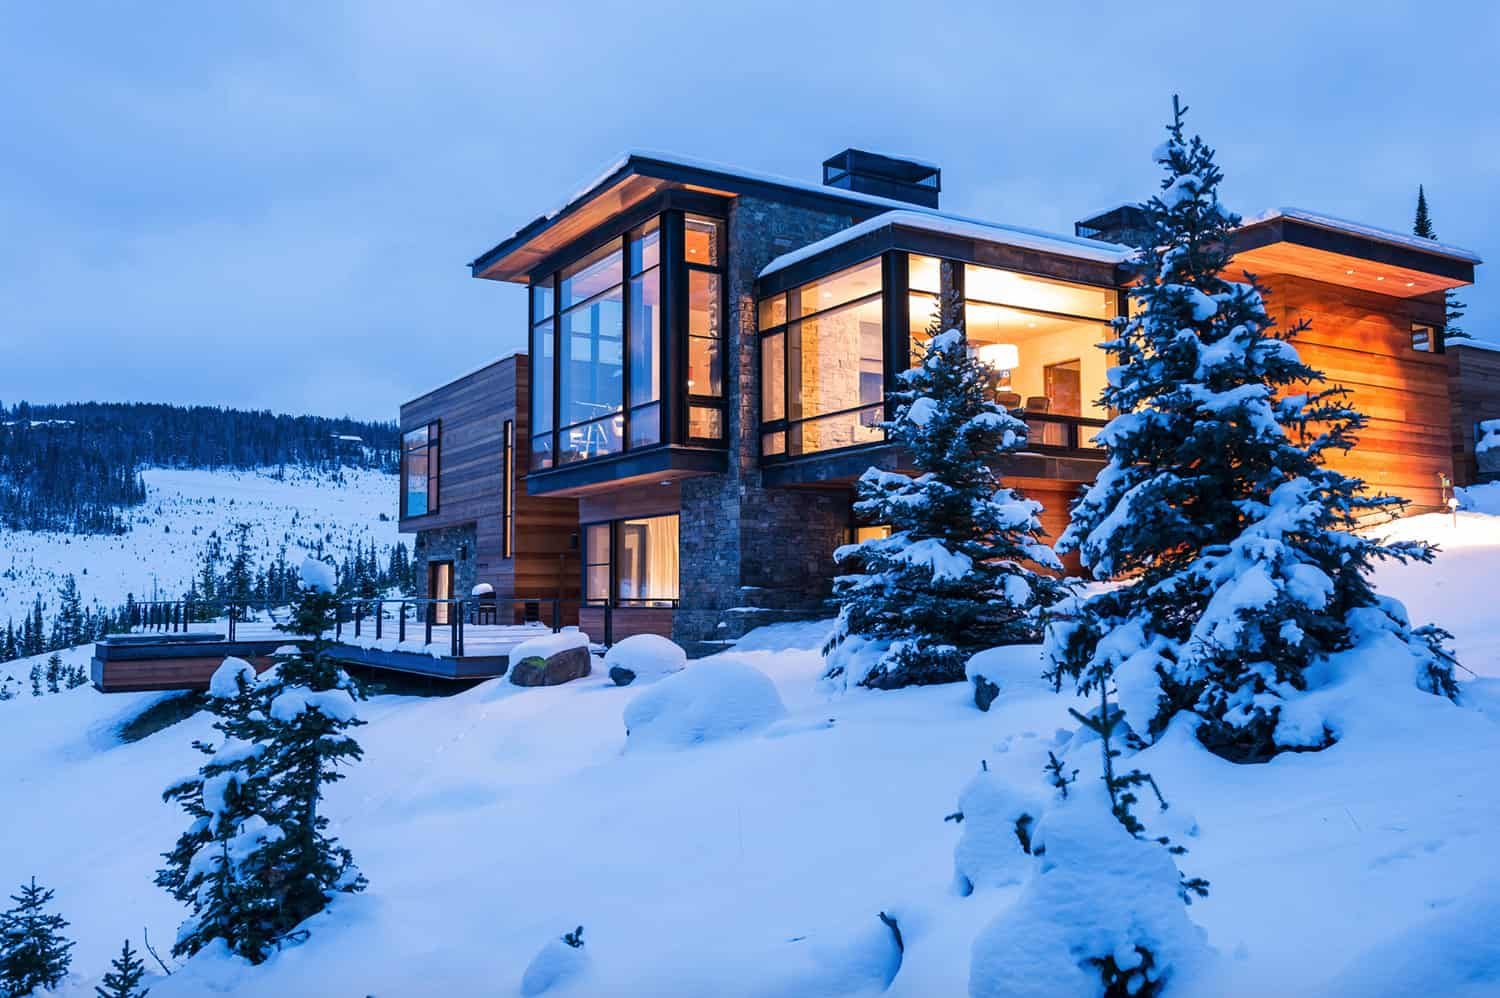 This beathtaking Rocky Mountain hideaway is an absolute dream house